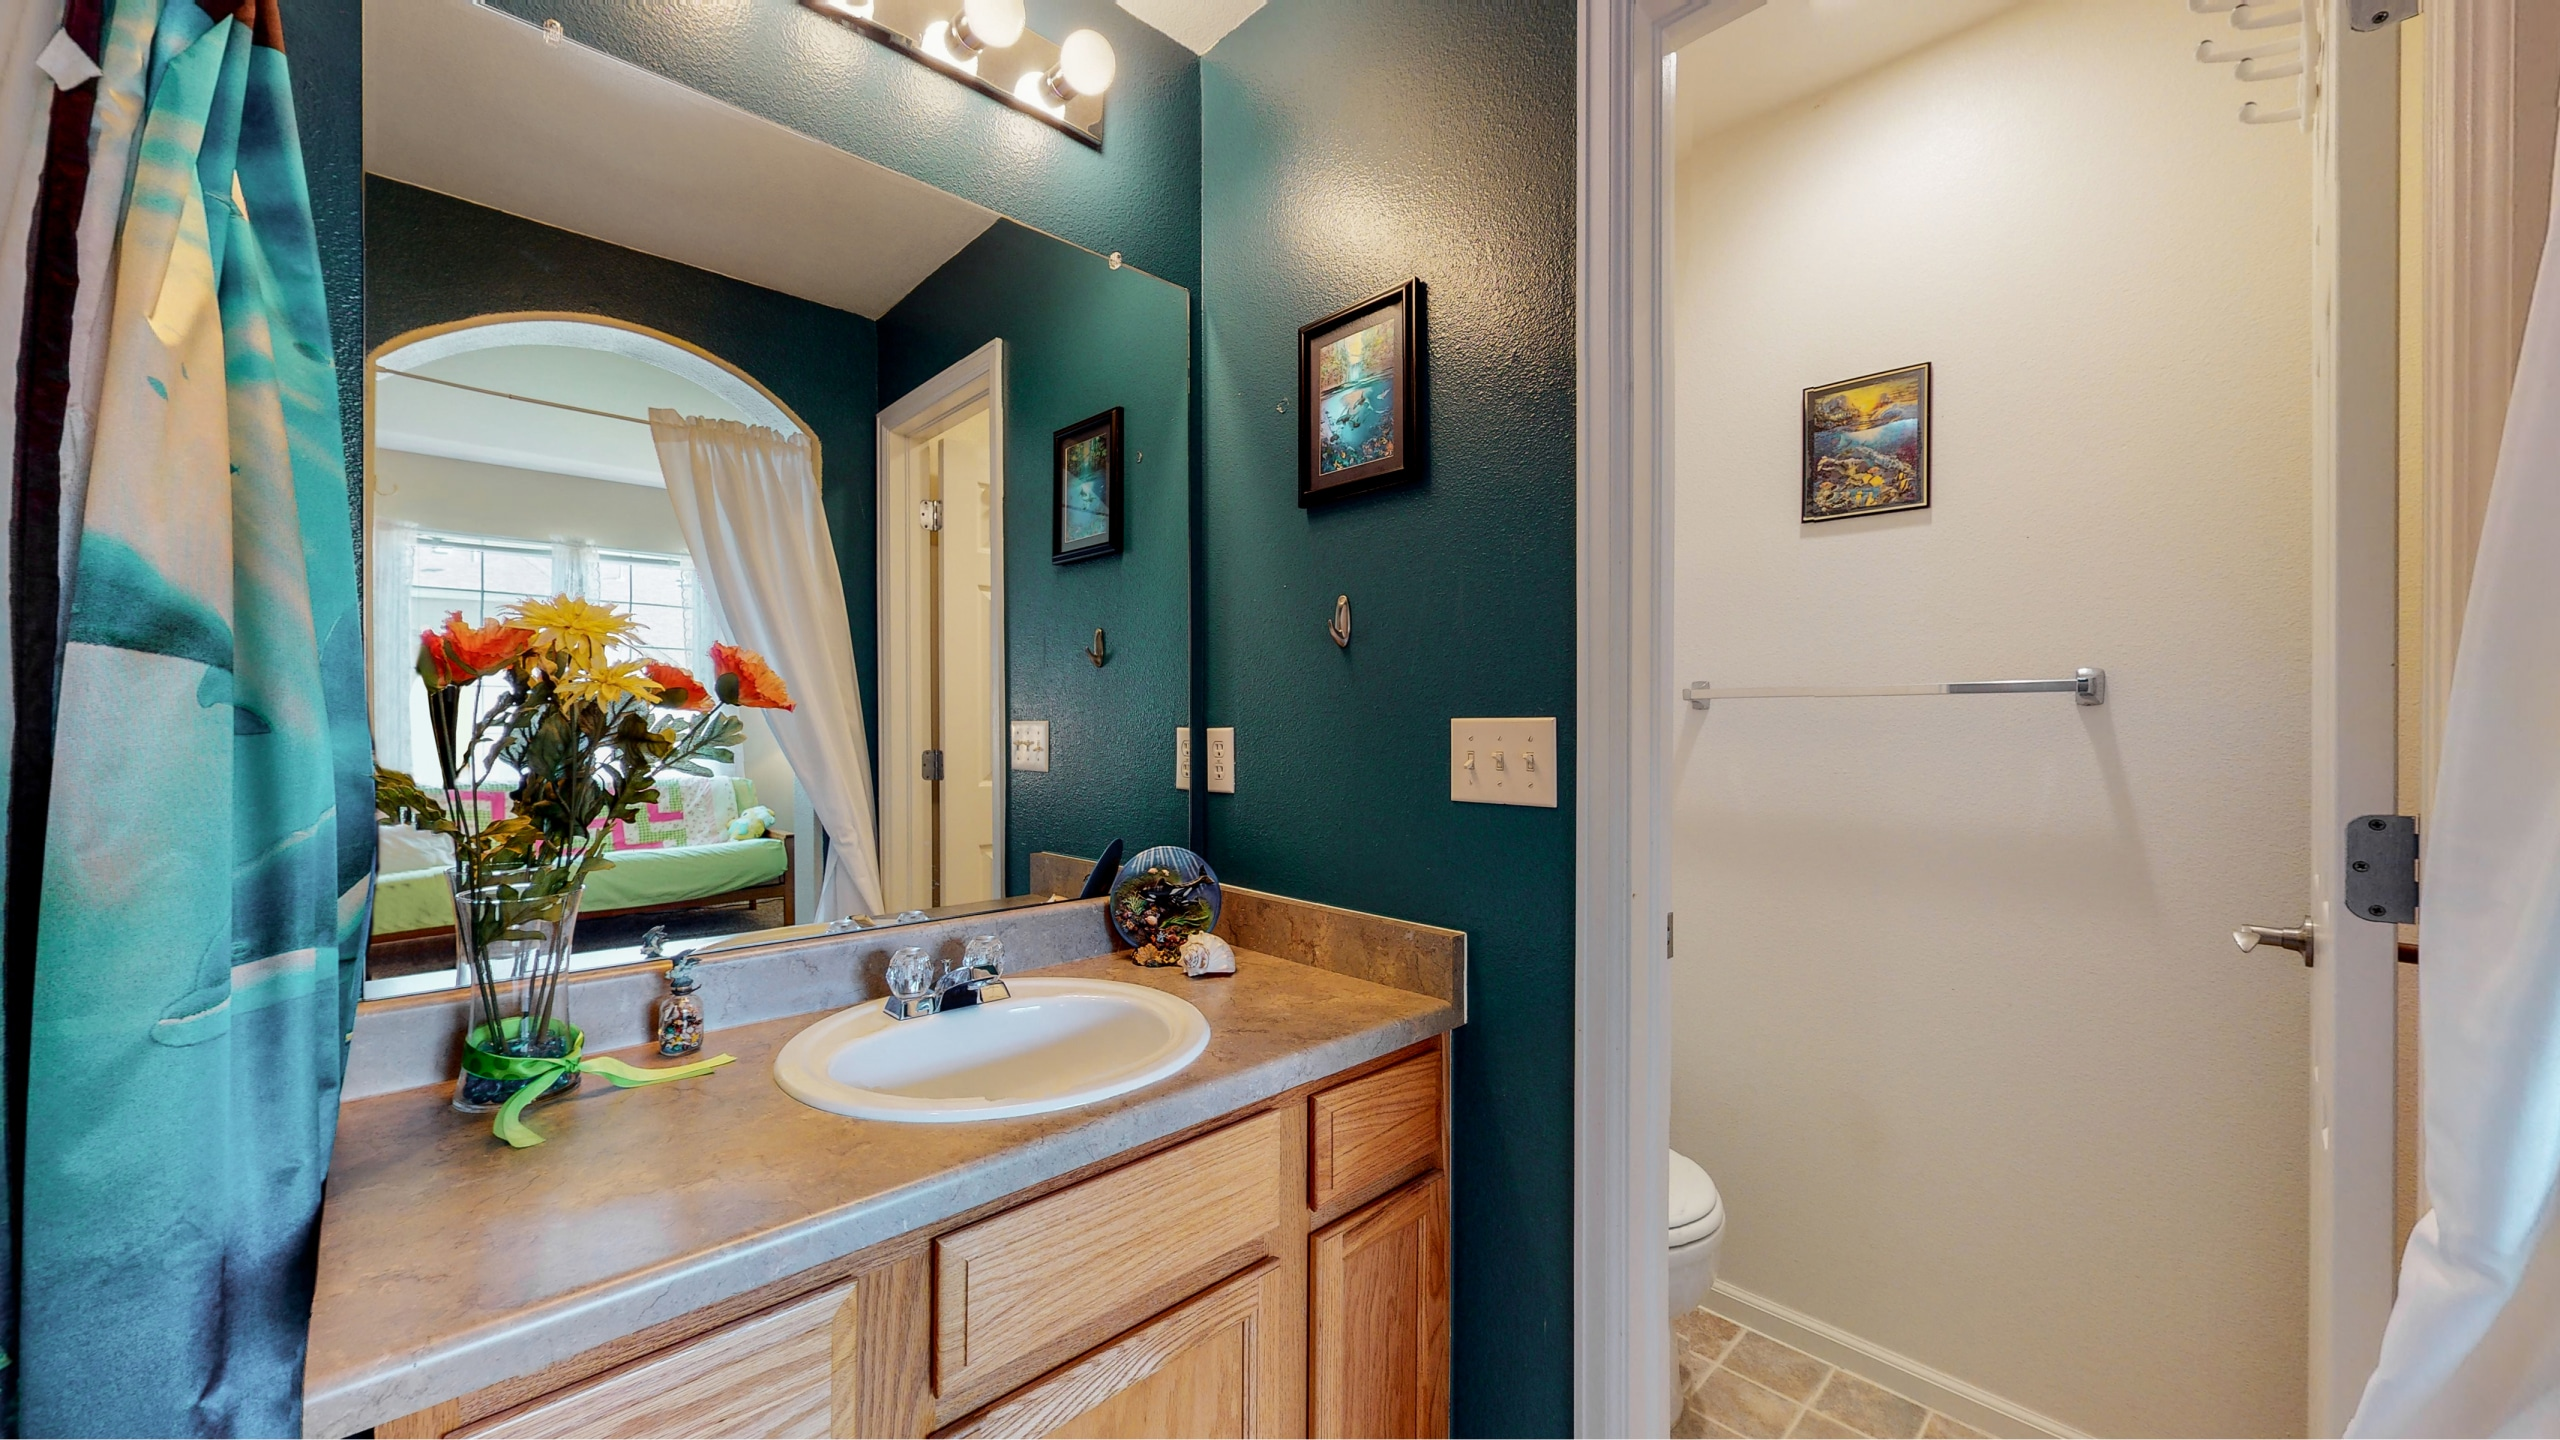 Extra Bathroom with separate water closet for toilet